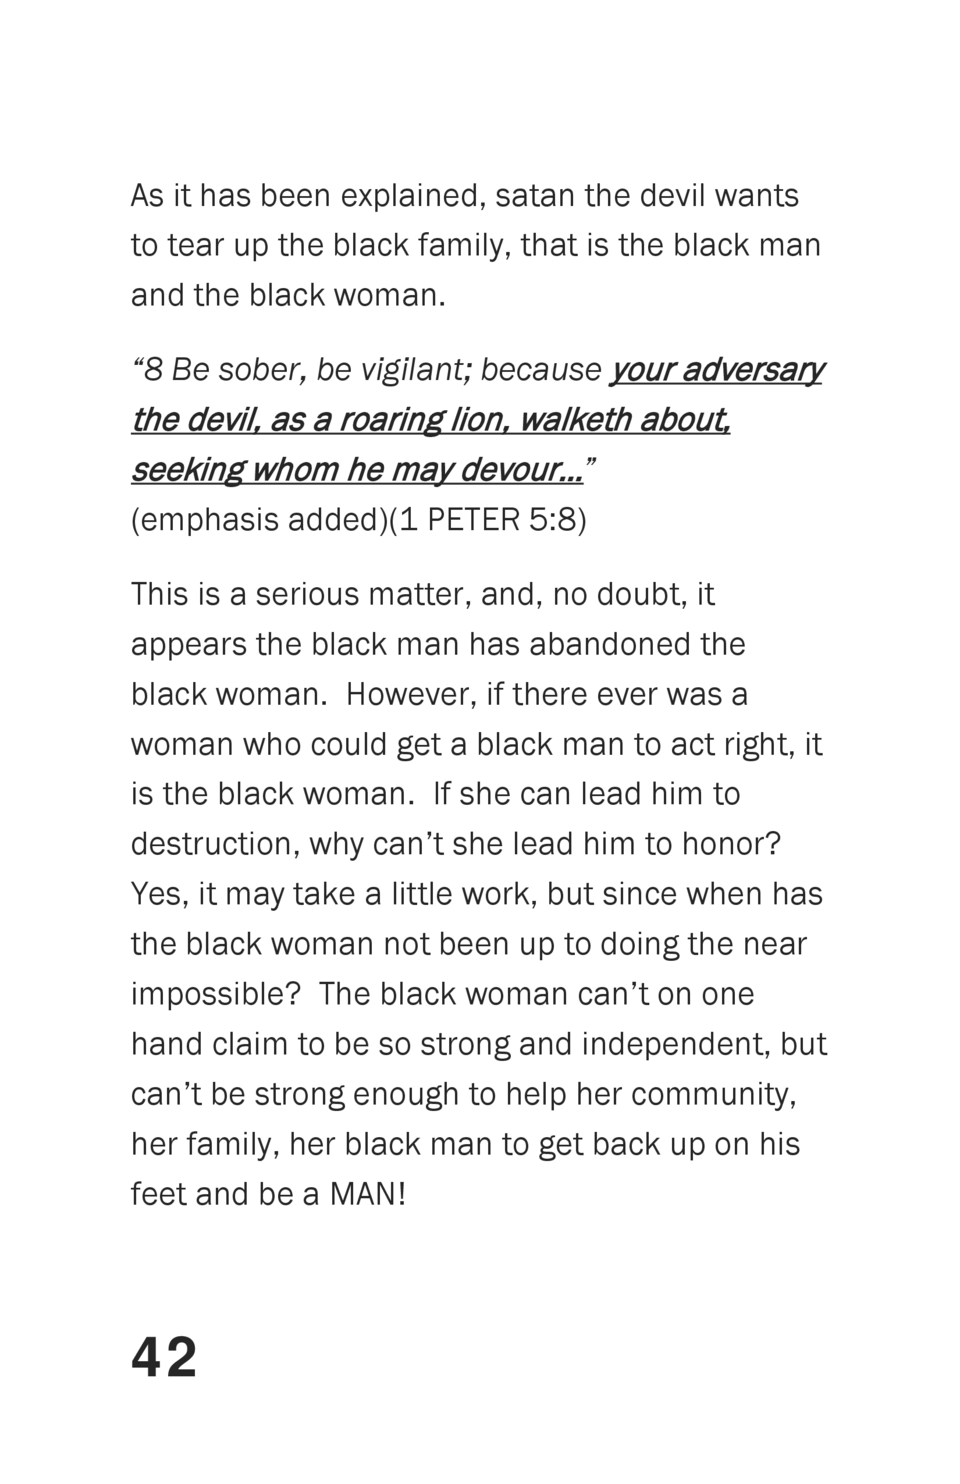 As it has been explained, satan the devil wants to tear up the black family, that is the black man and the black woman.   ...